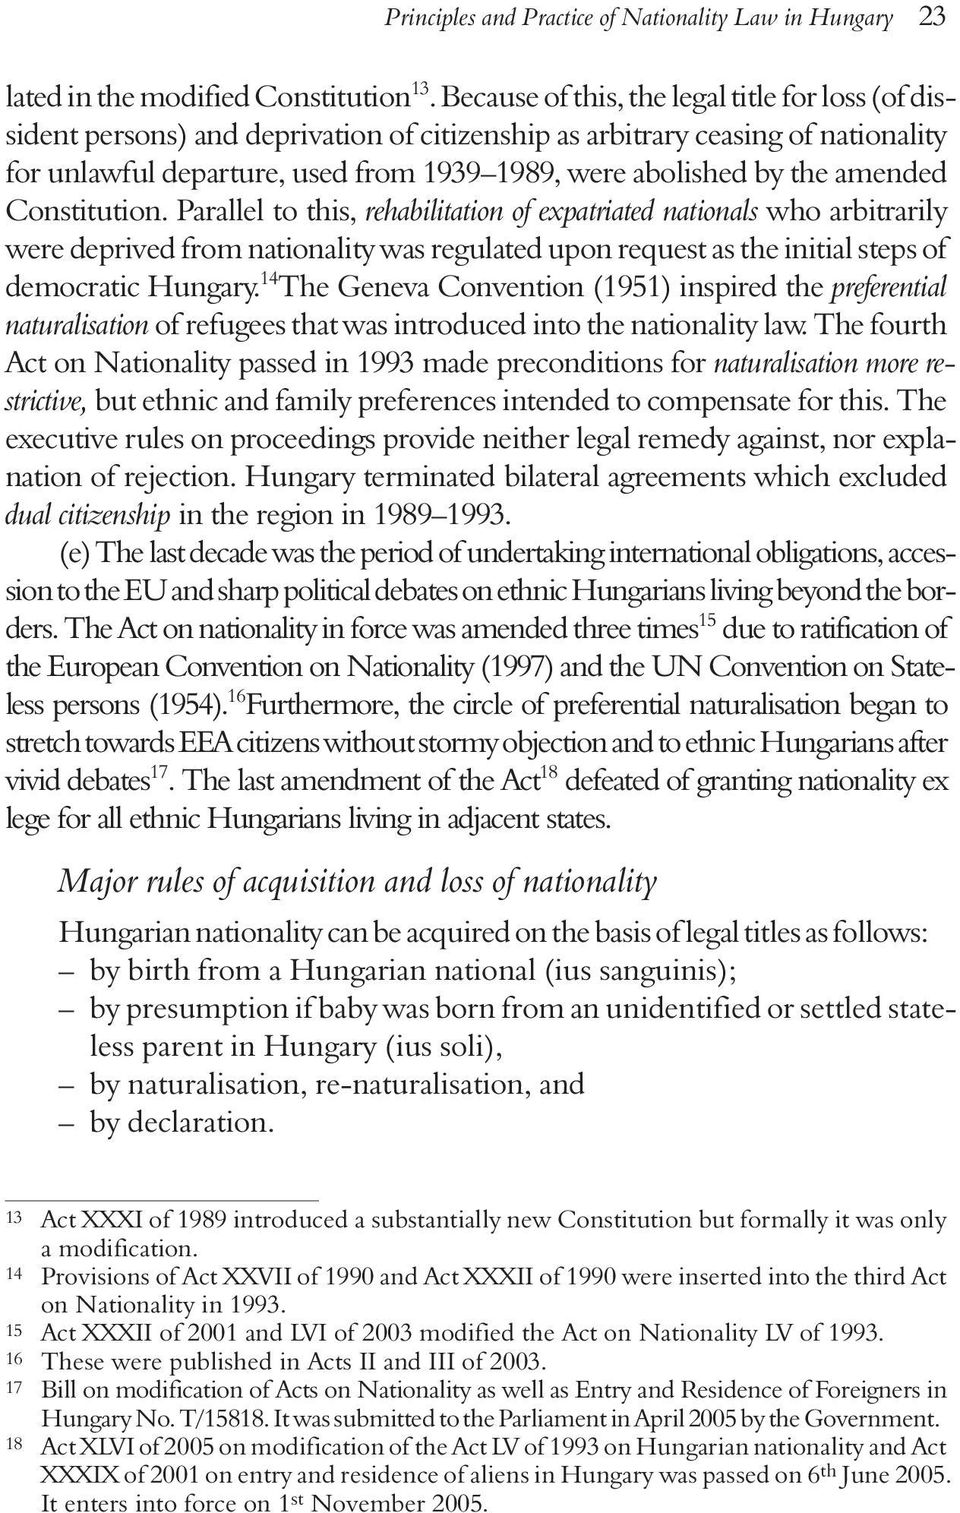 amended Constitution. Parallel to this, rehabilitation of expatriated nationals who arbitrarily were deprived from nationality was regulated upon request as the initial steps of democratic Hungary.